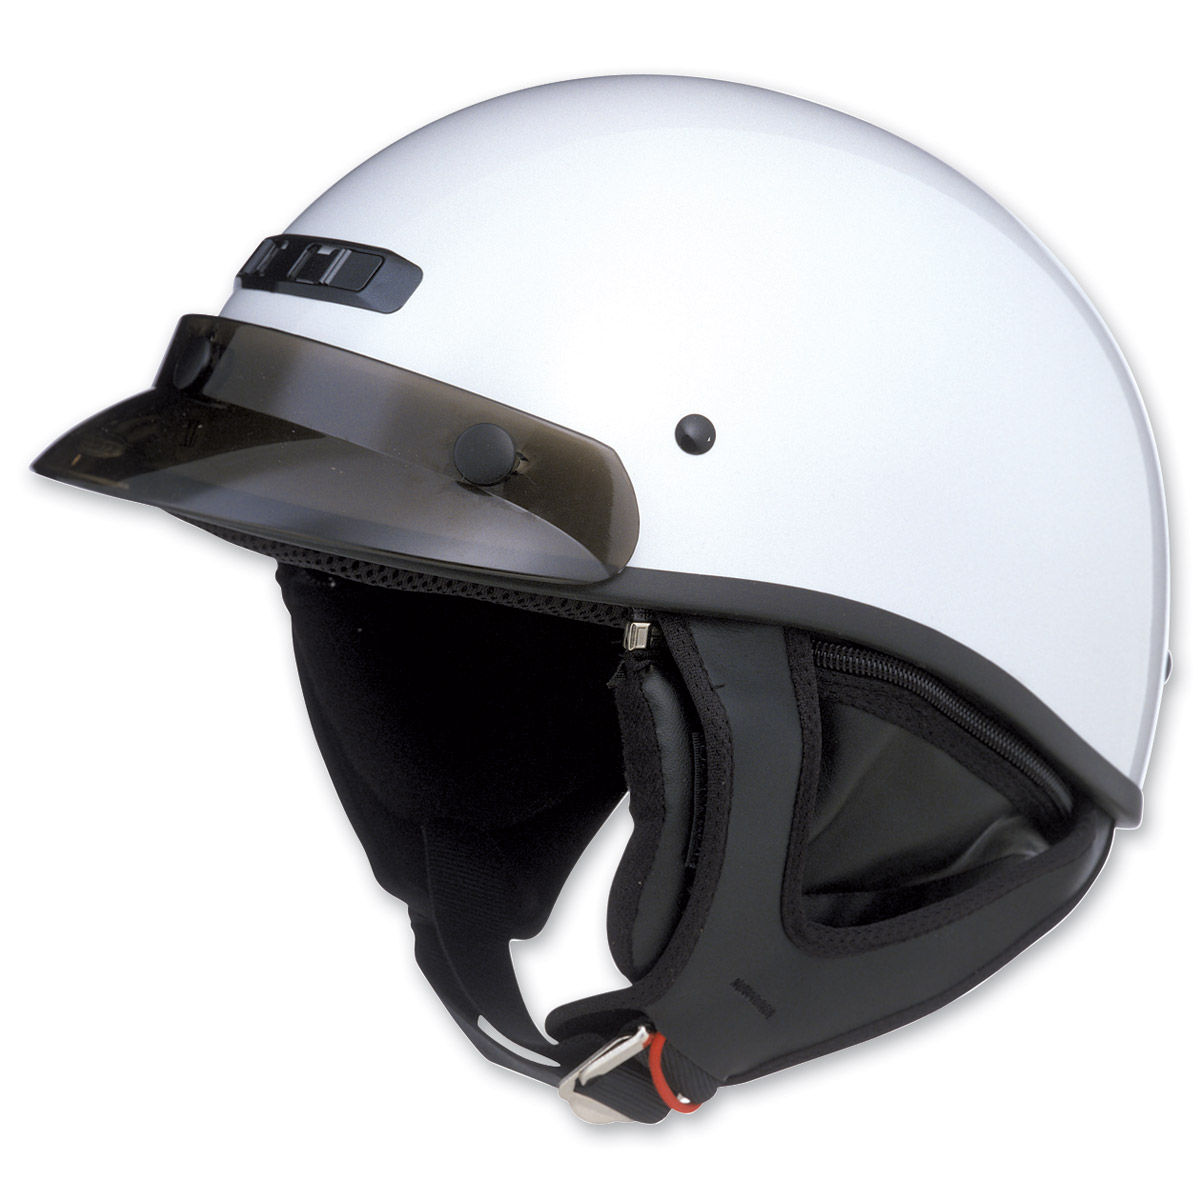 GMAX GM35 Fully Dressed Pearl White Half Helmet